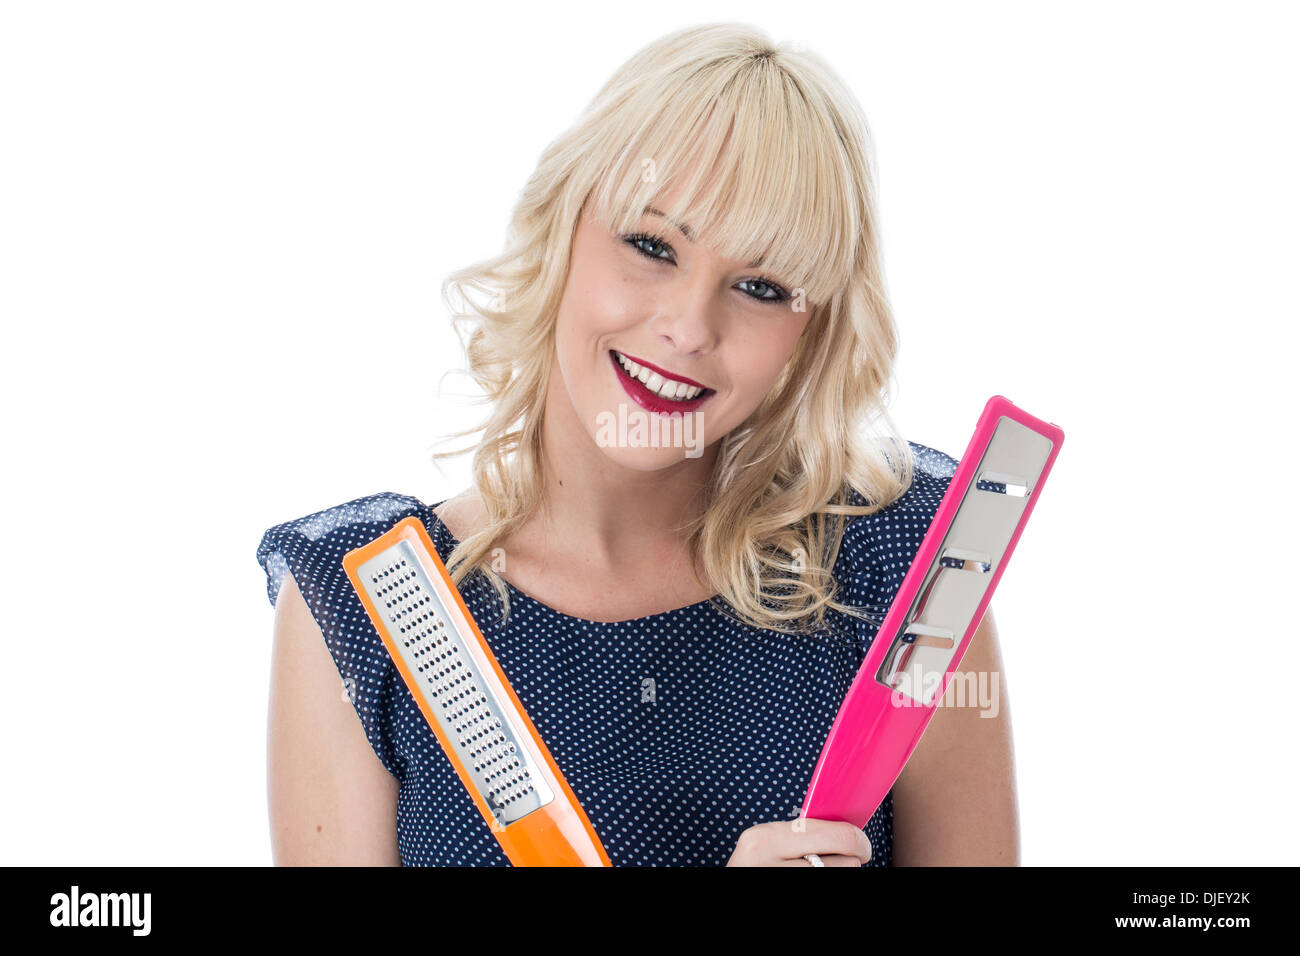 Model Released. Attractive Young Holding Kitchen Utensils - Stock Image